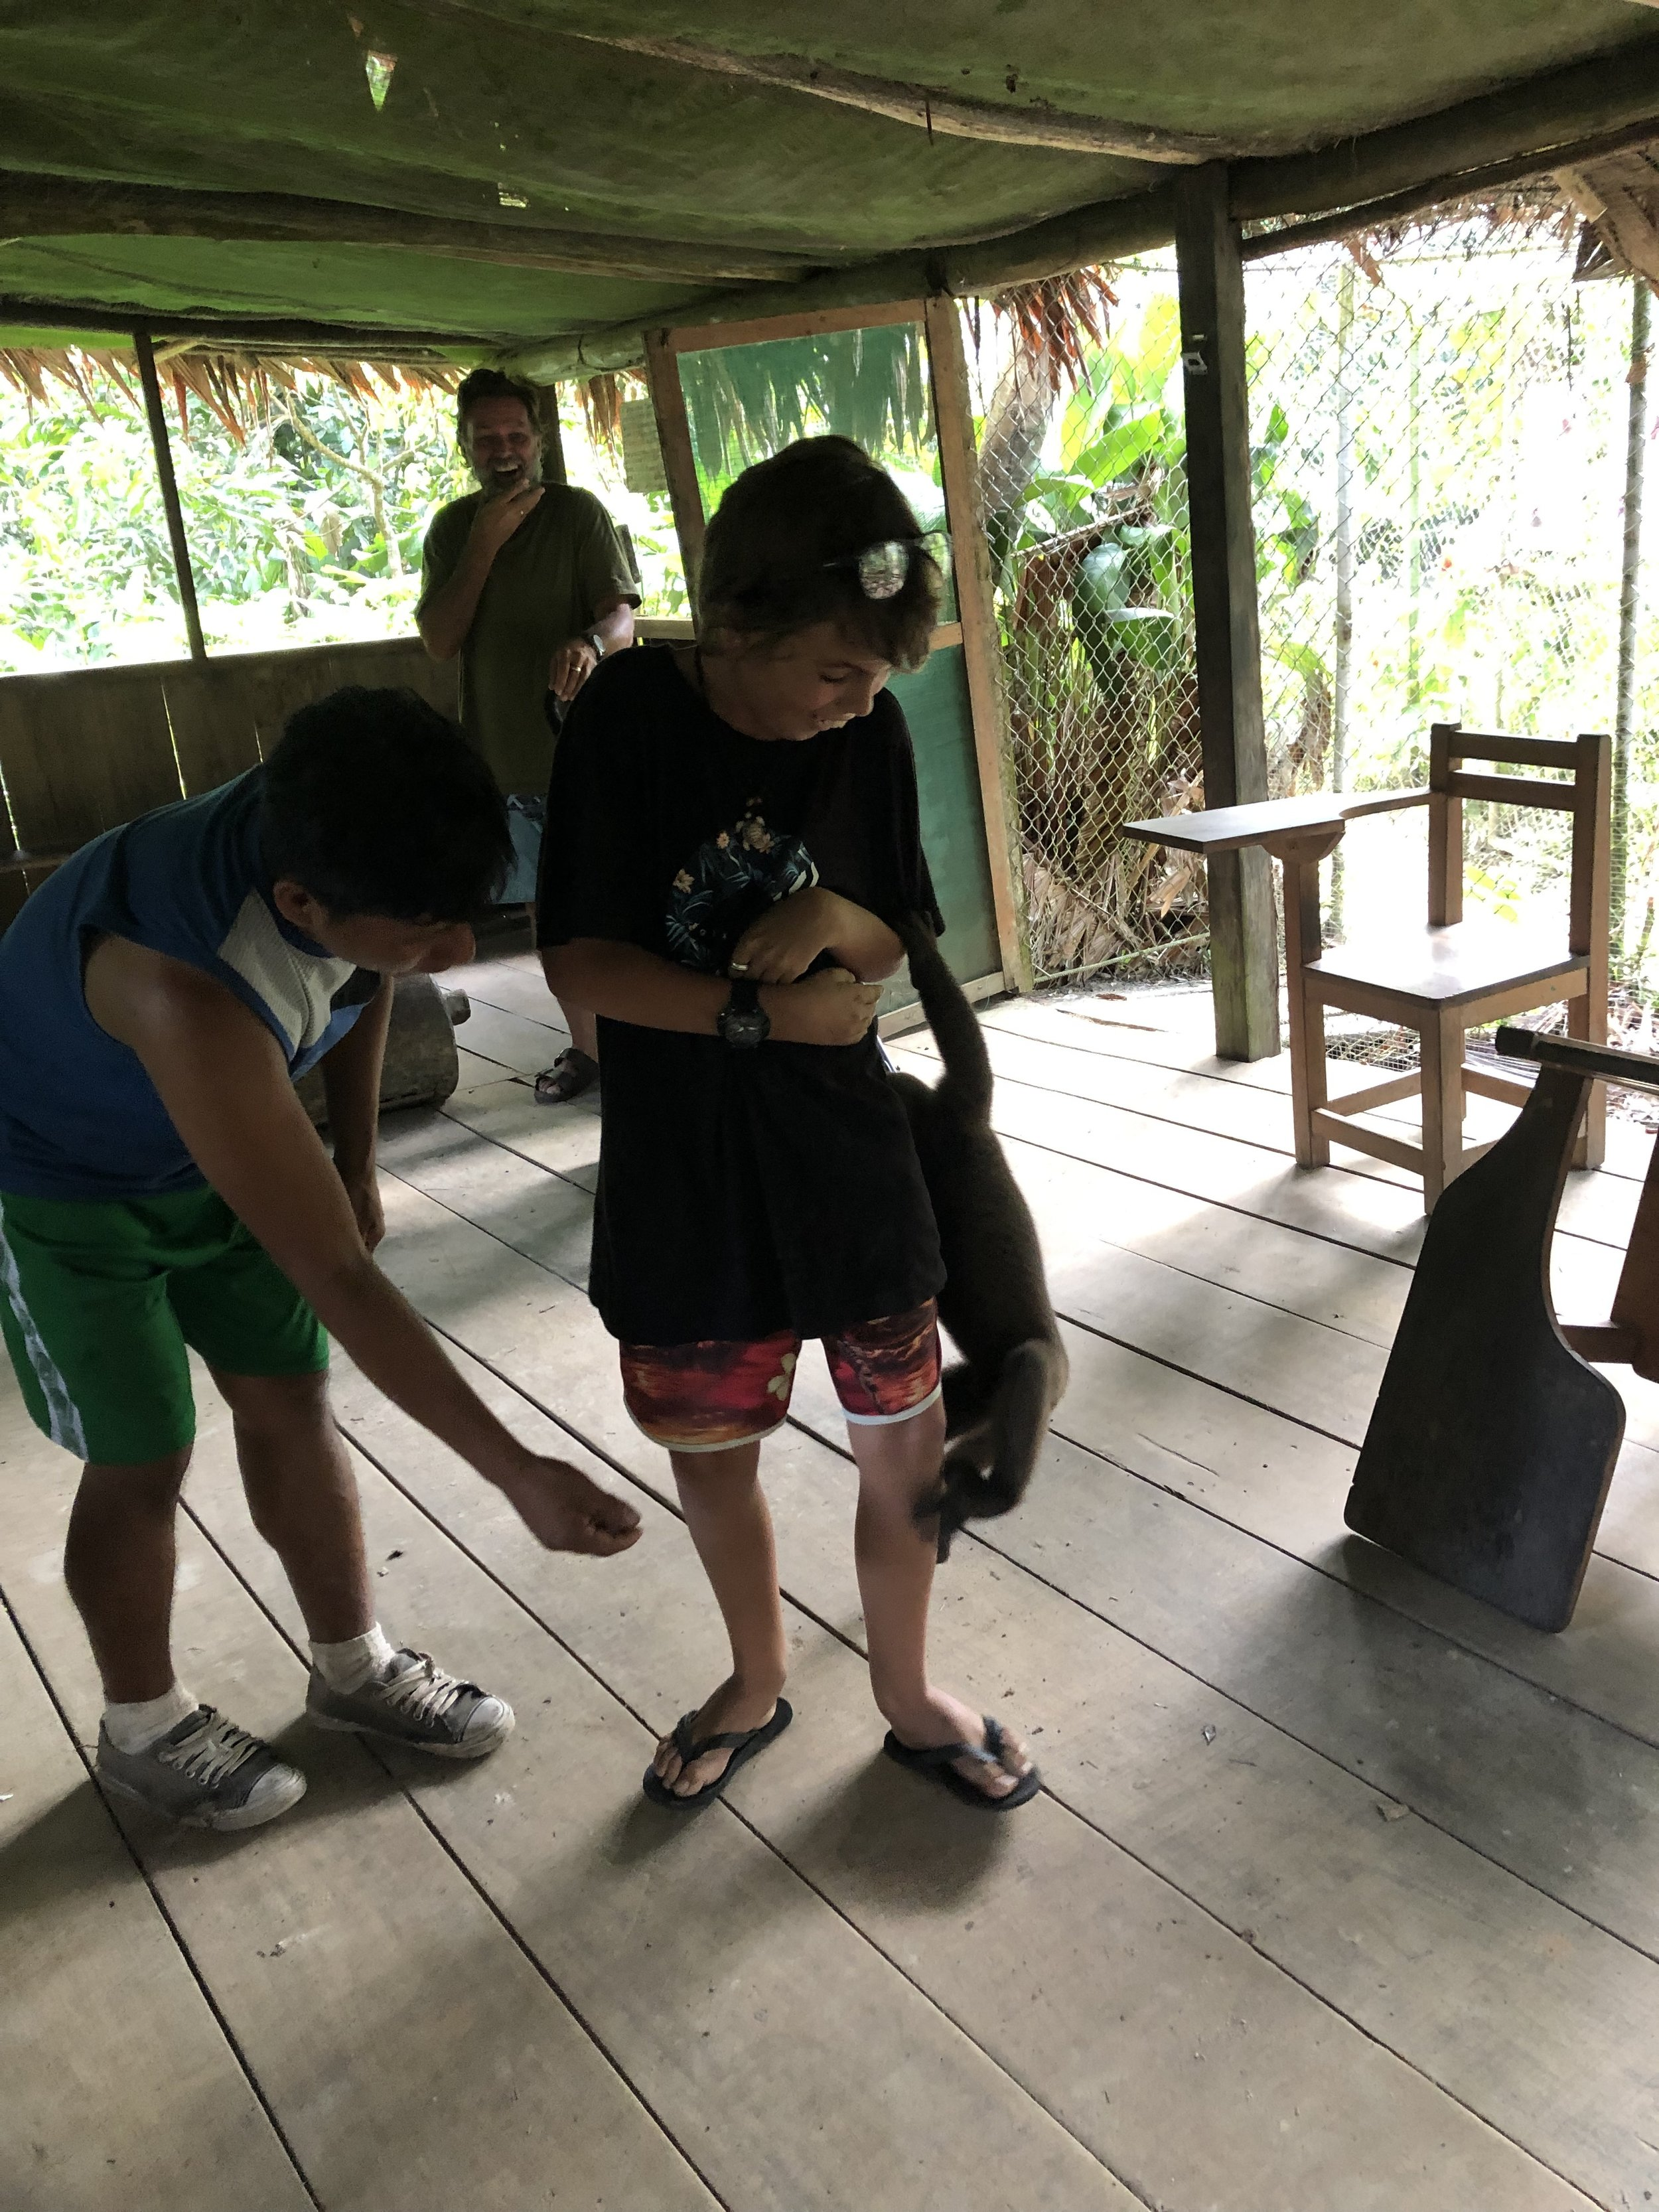 Aaaaaaaaah the Amazon. With monkeys 🐒 and sloths and snakes and spiders 🕷. We had a crazy time at the Amazon, I had a monkey jumping on me and we saw some parrots 🦜, which looked colourful and yeah let's get straight into it.